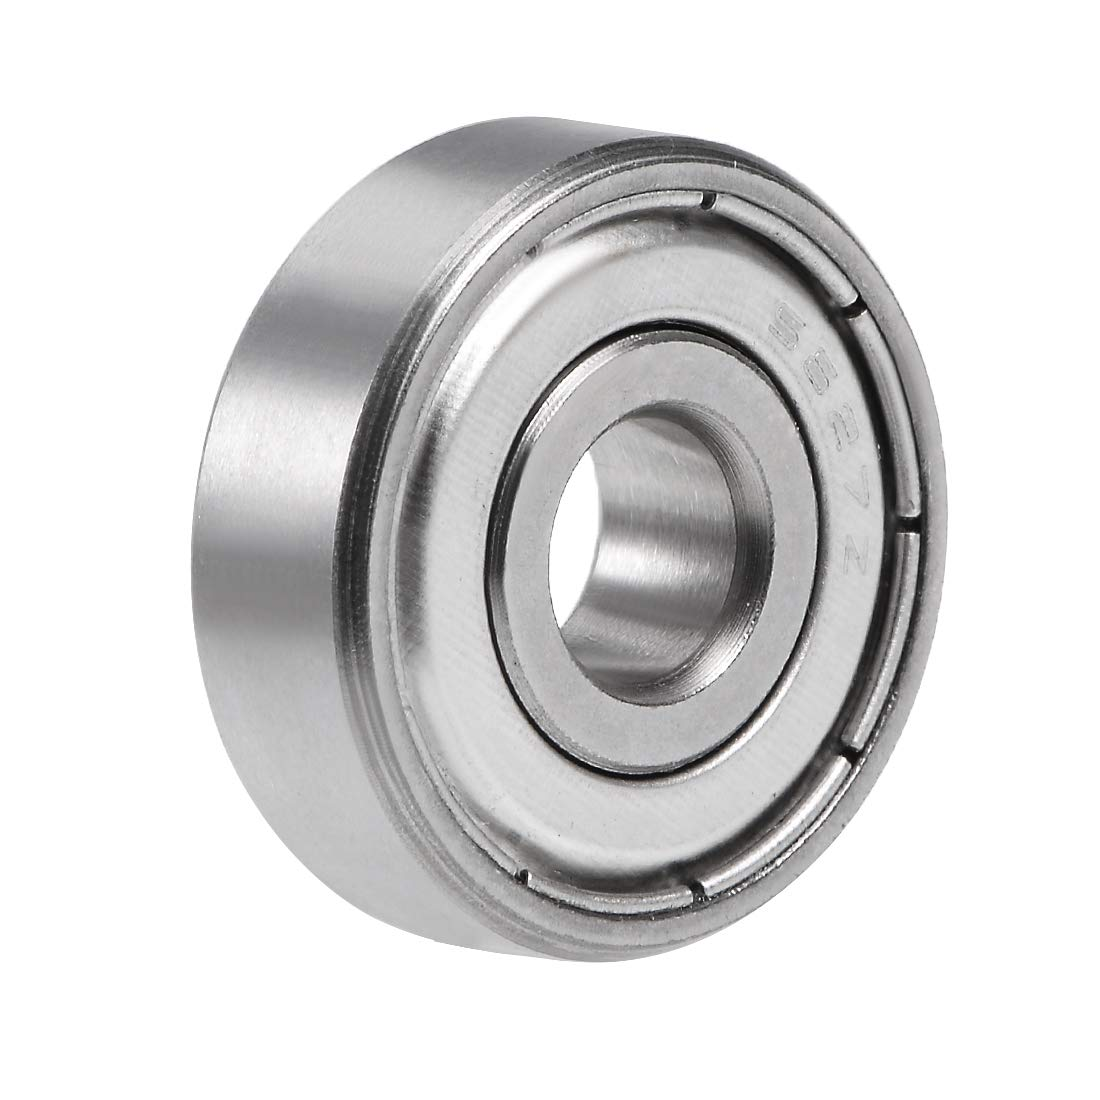 uxcell S627ZZ Stainless Steel Ball Bearing 7x22x7mm Double Shielded 627Z Bearings 1-Pack